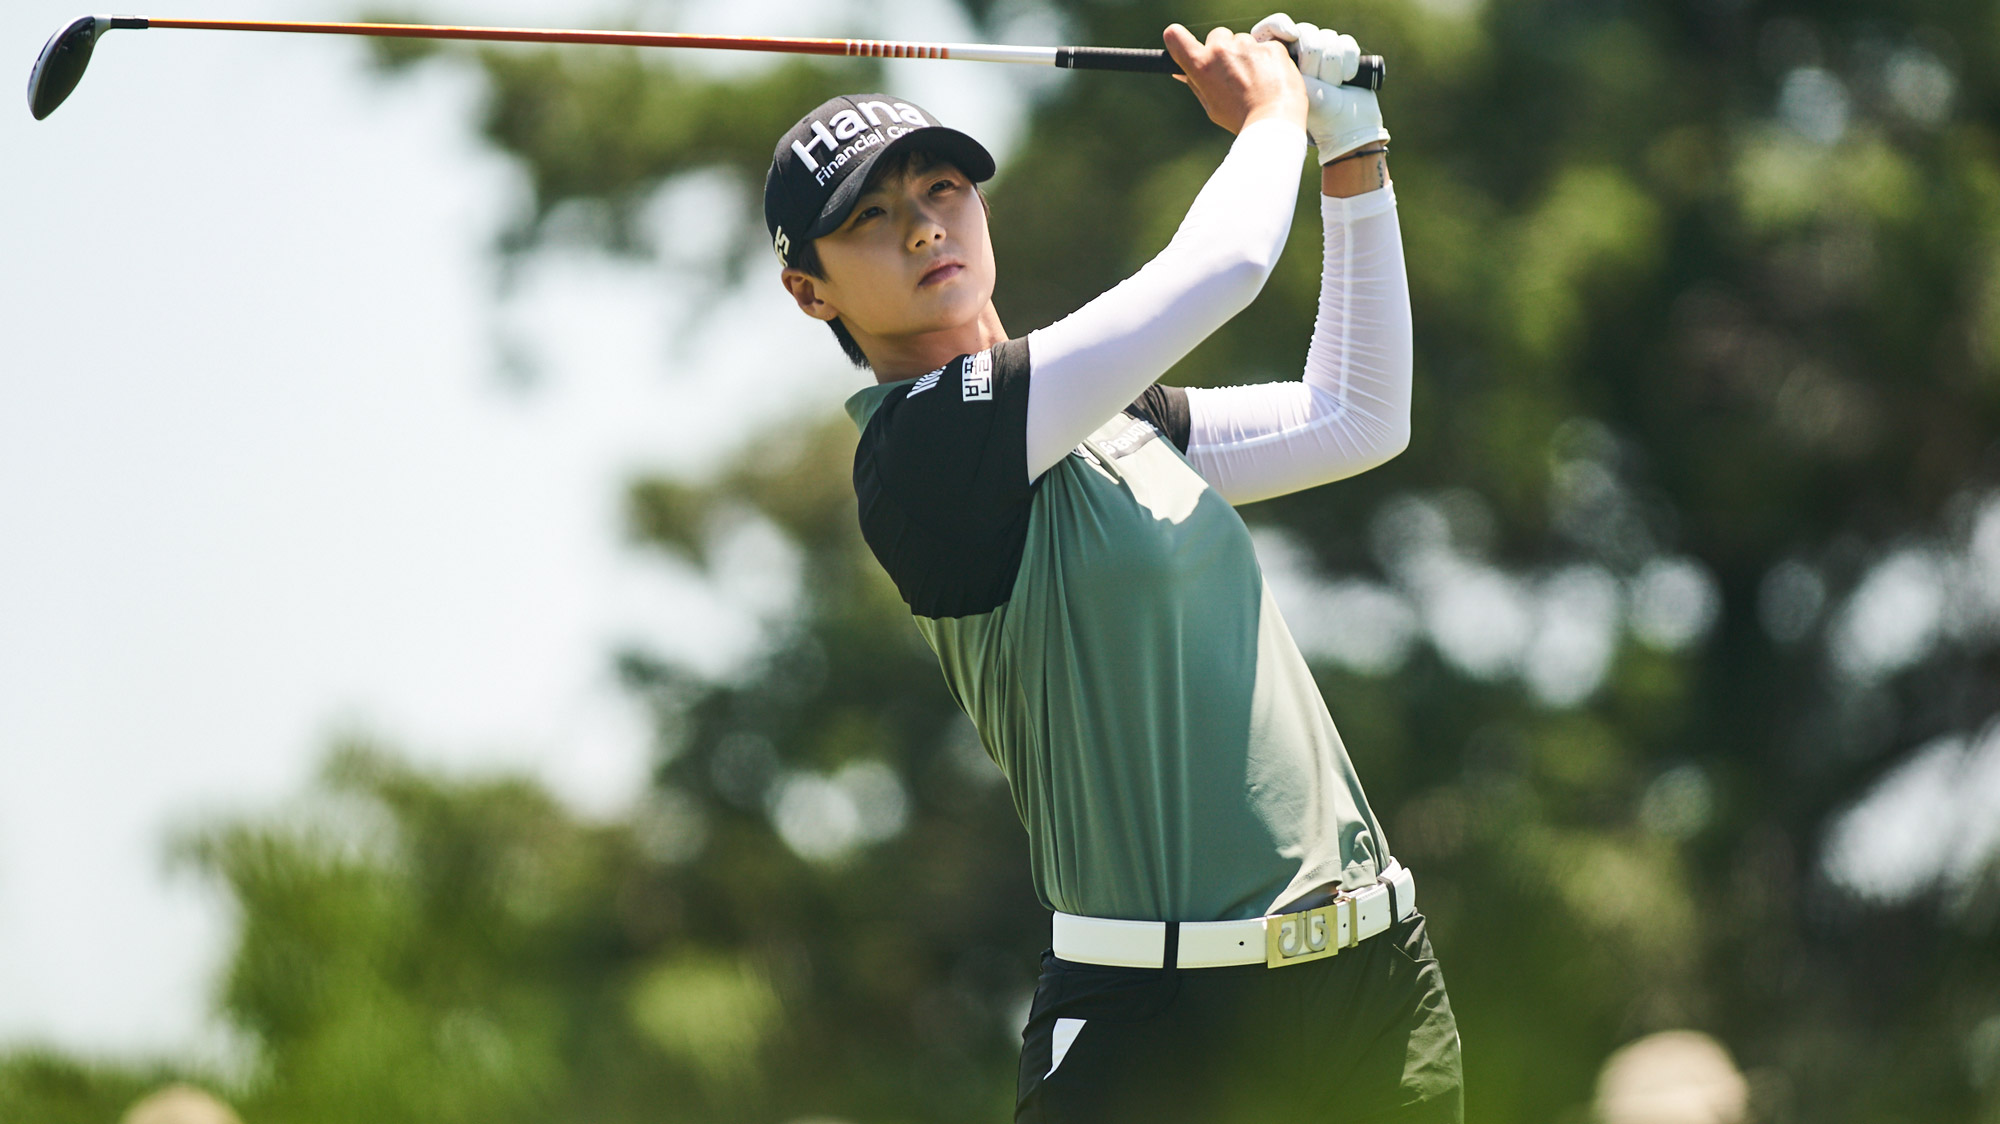 Sung Hyun Park on Sunday at the VOA LPGA Texas Classic